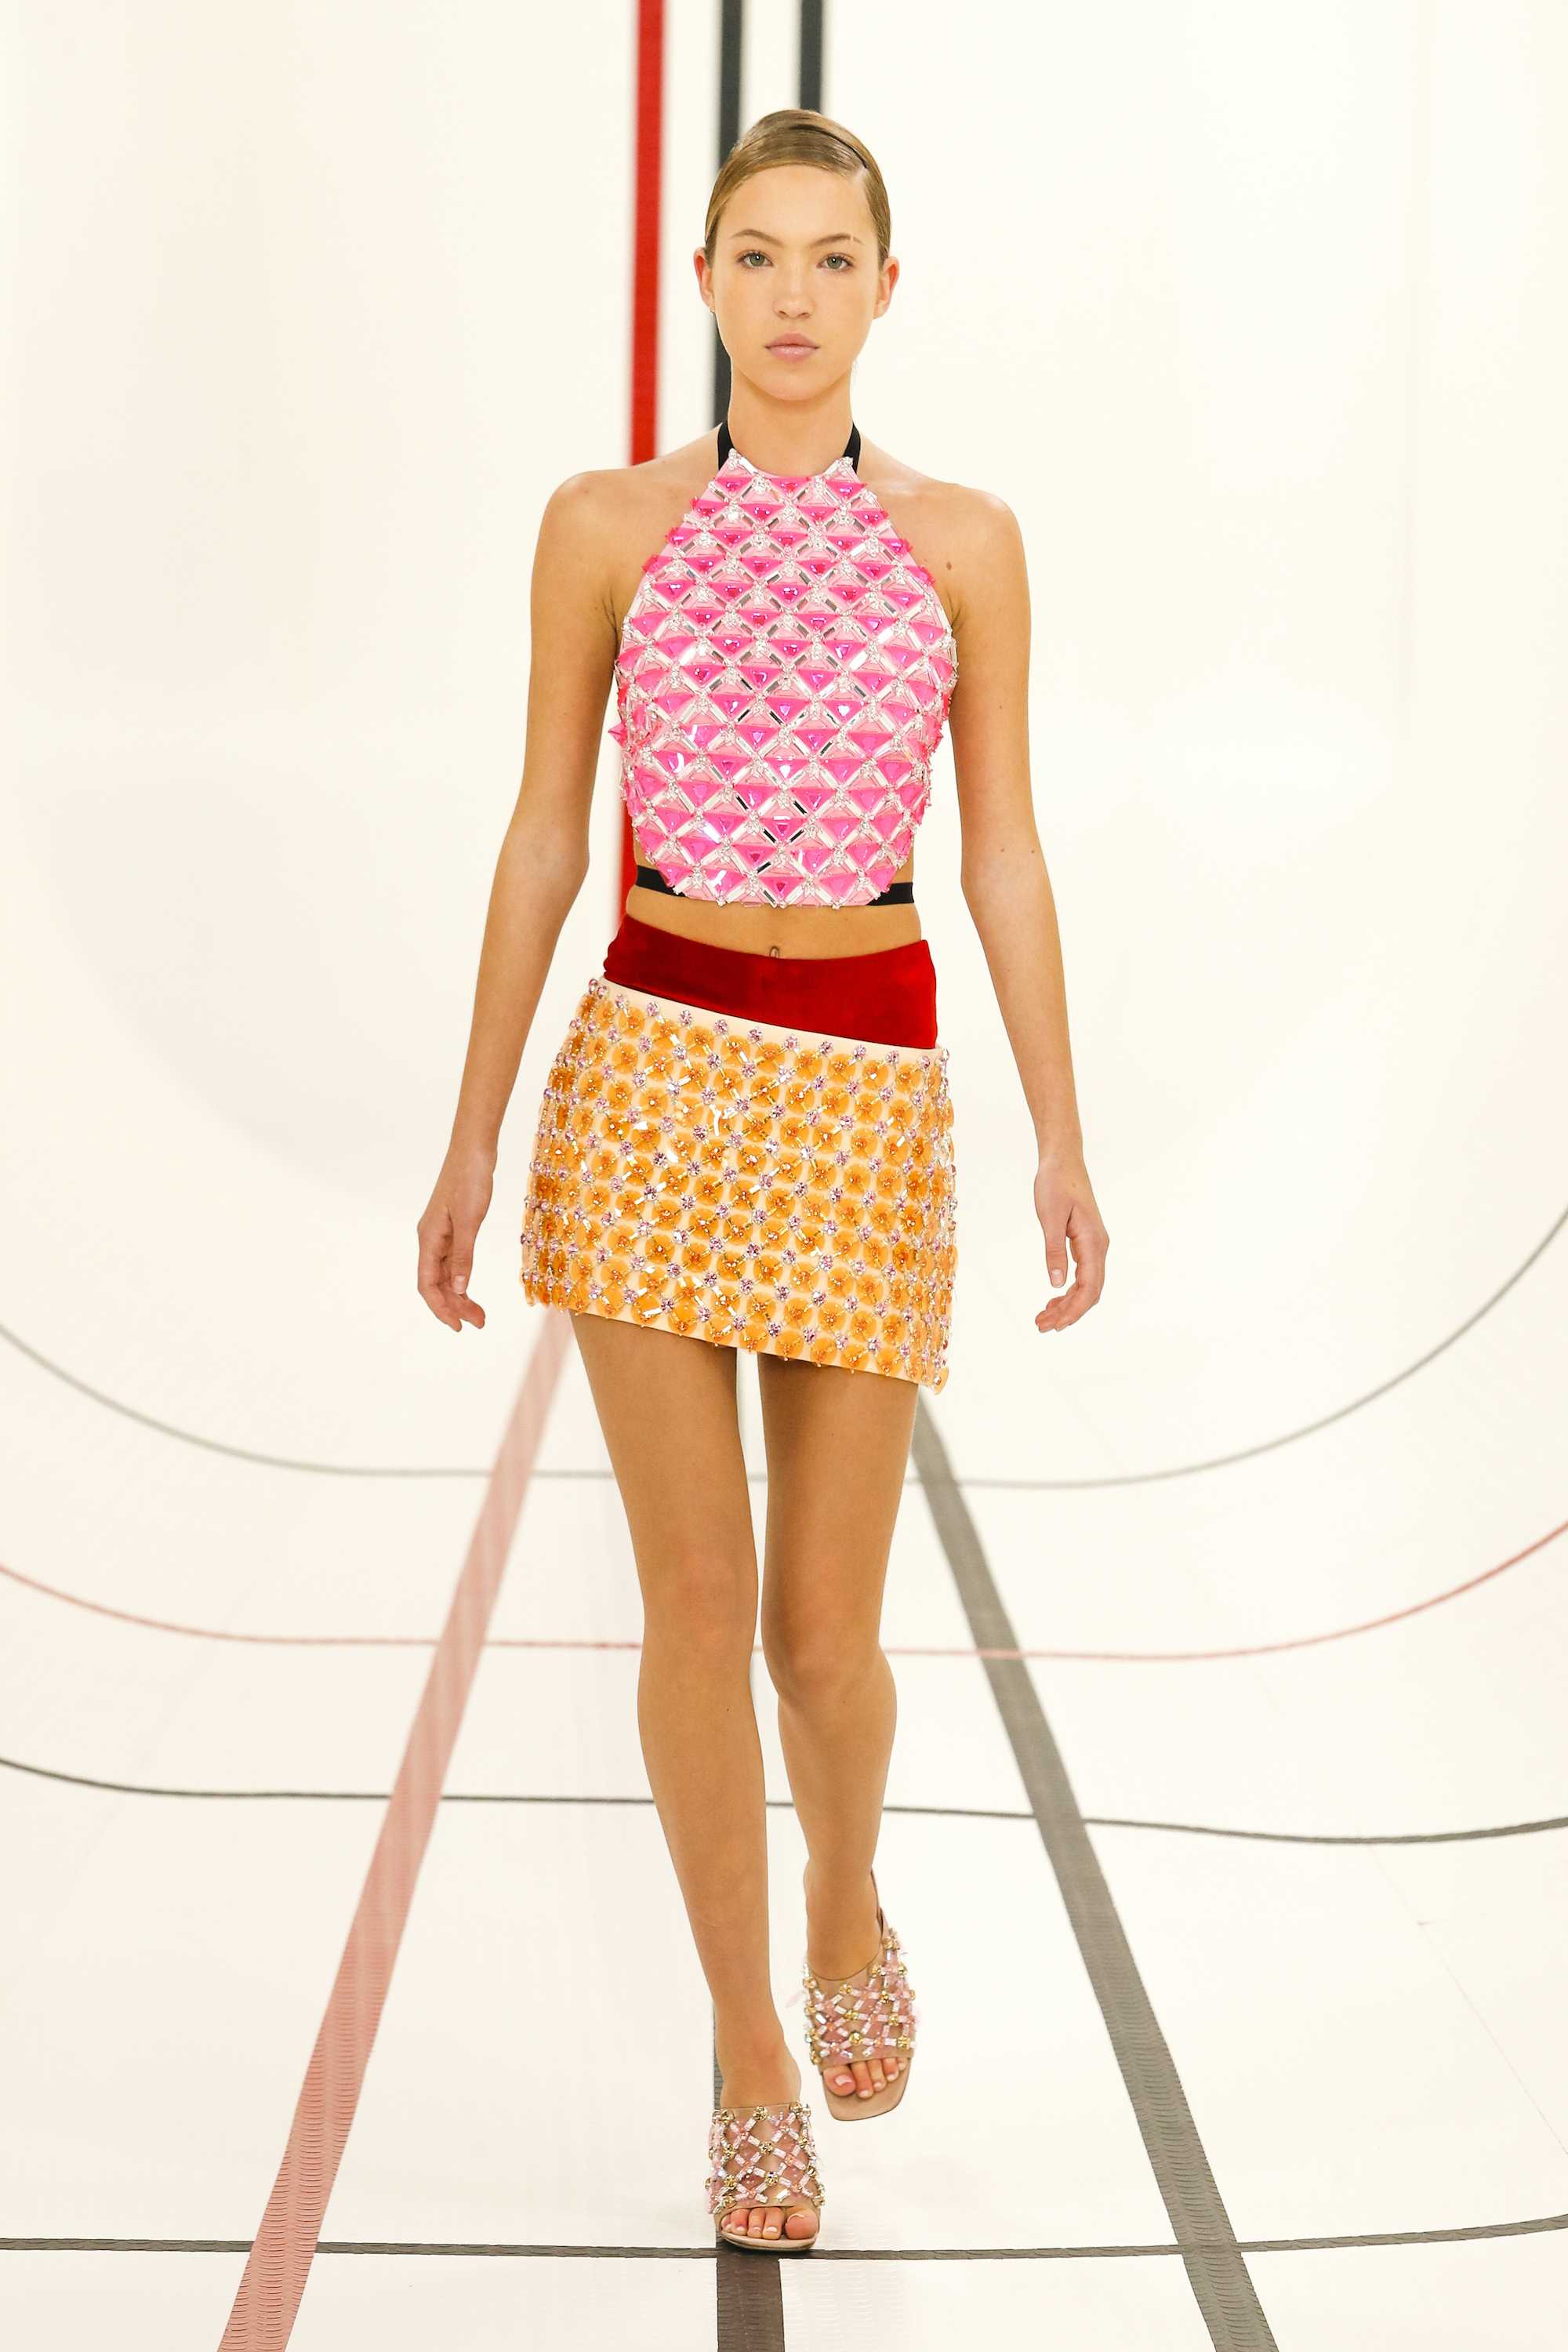 Miu Miu SS 21 yellow skirt and pink top Lila Moss